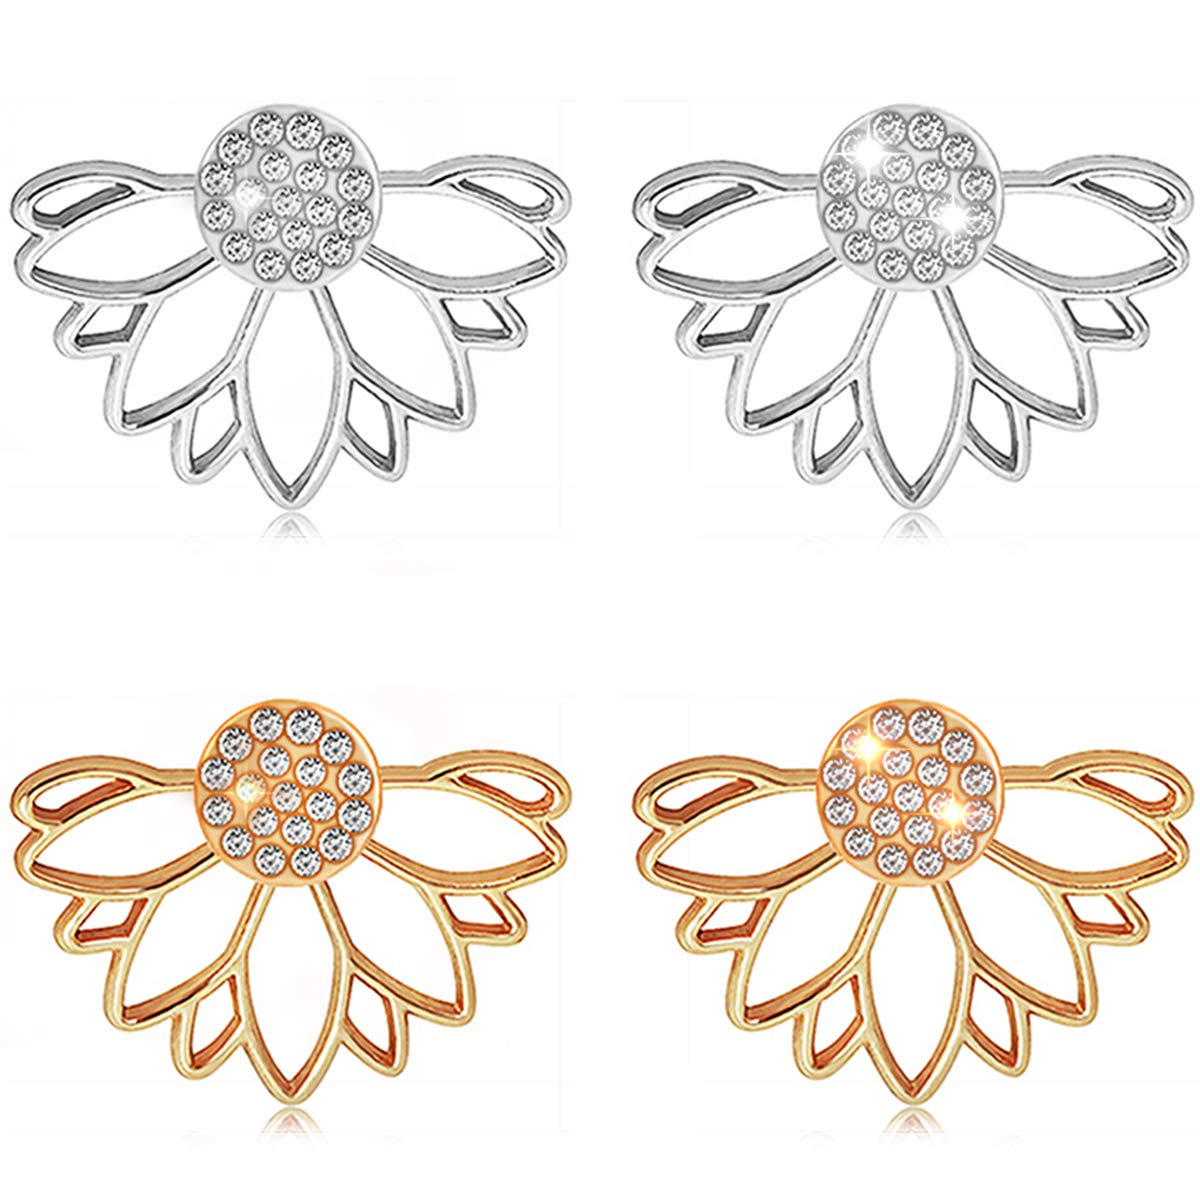 95345e055 Suyi Fashion Hollow Lotus Flower Earrings Crystal Simple Chic Stud Earrings  Set AGS: Amazon.ca: Jewelry